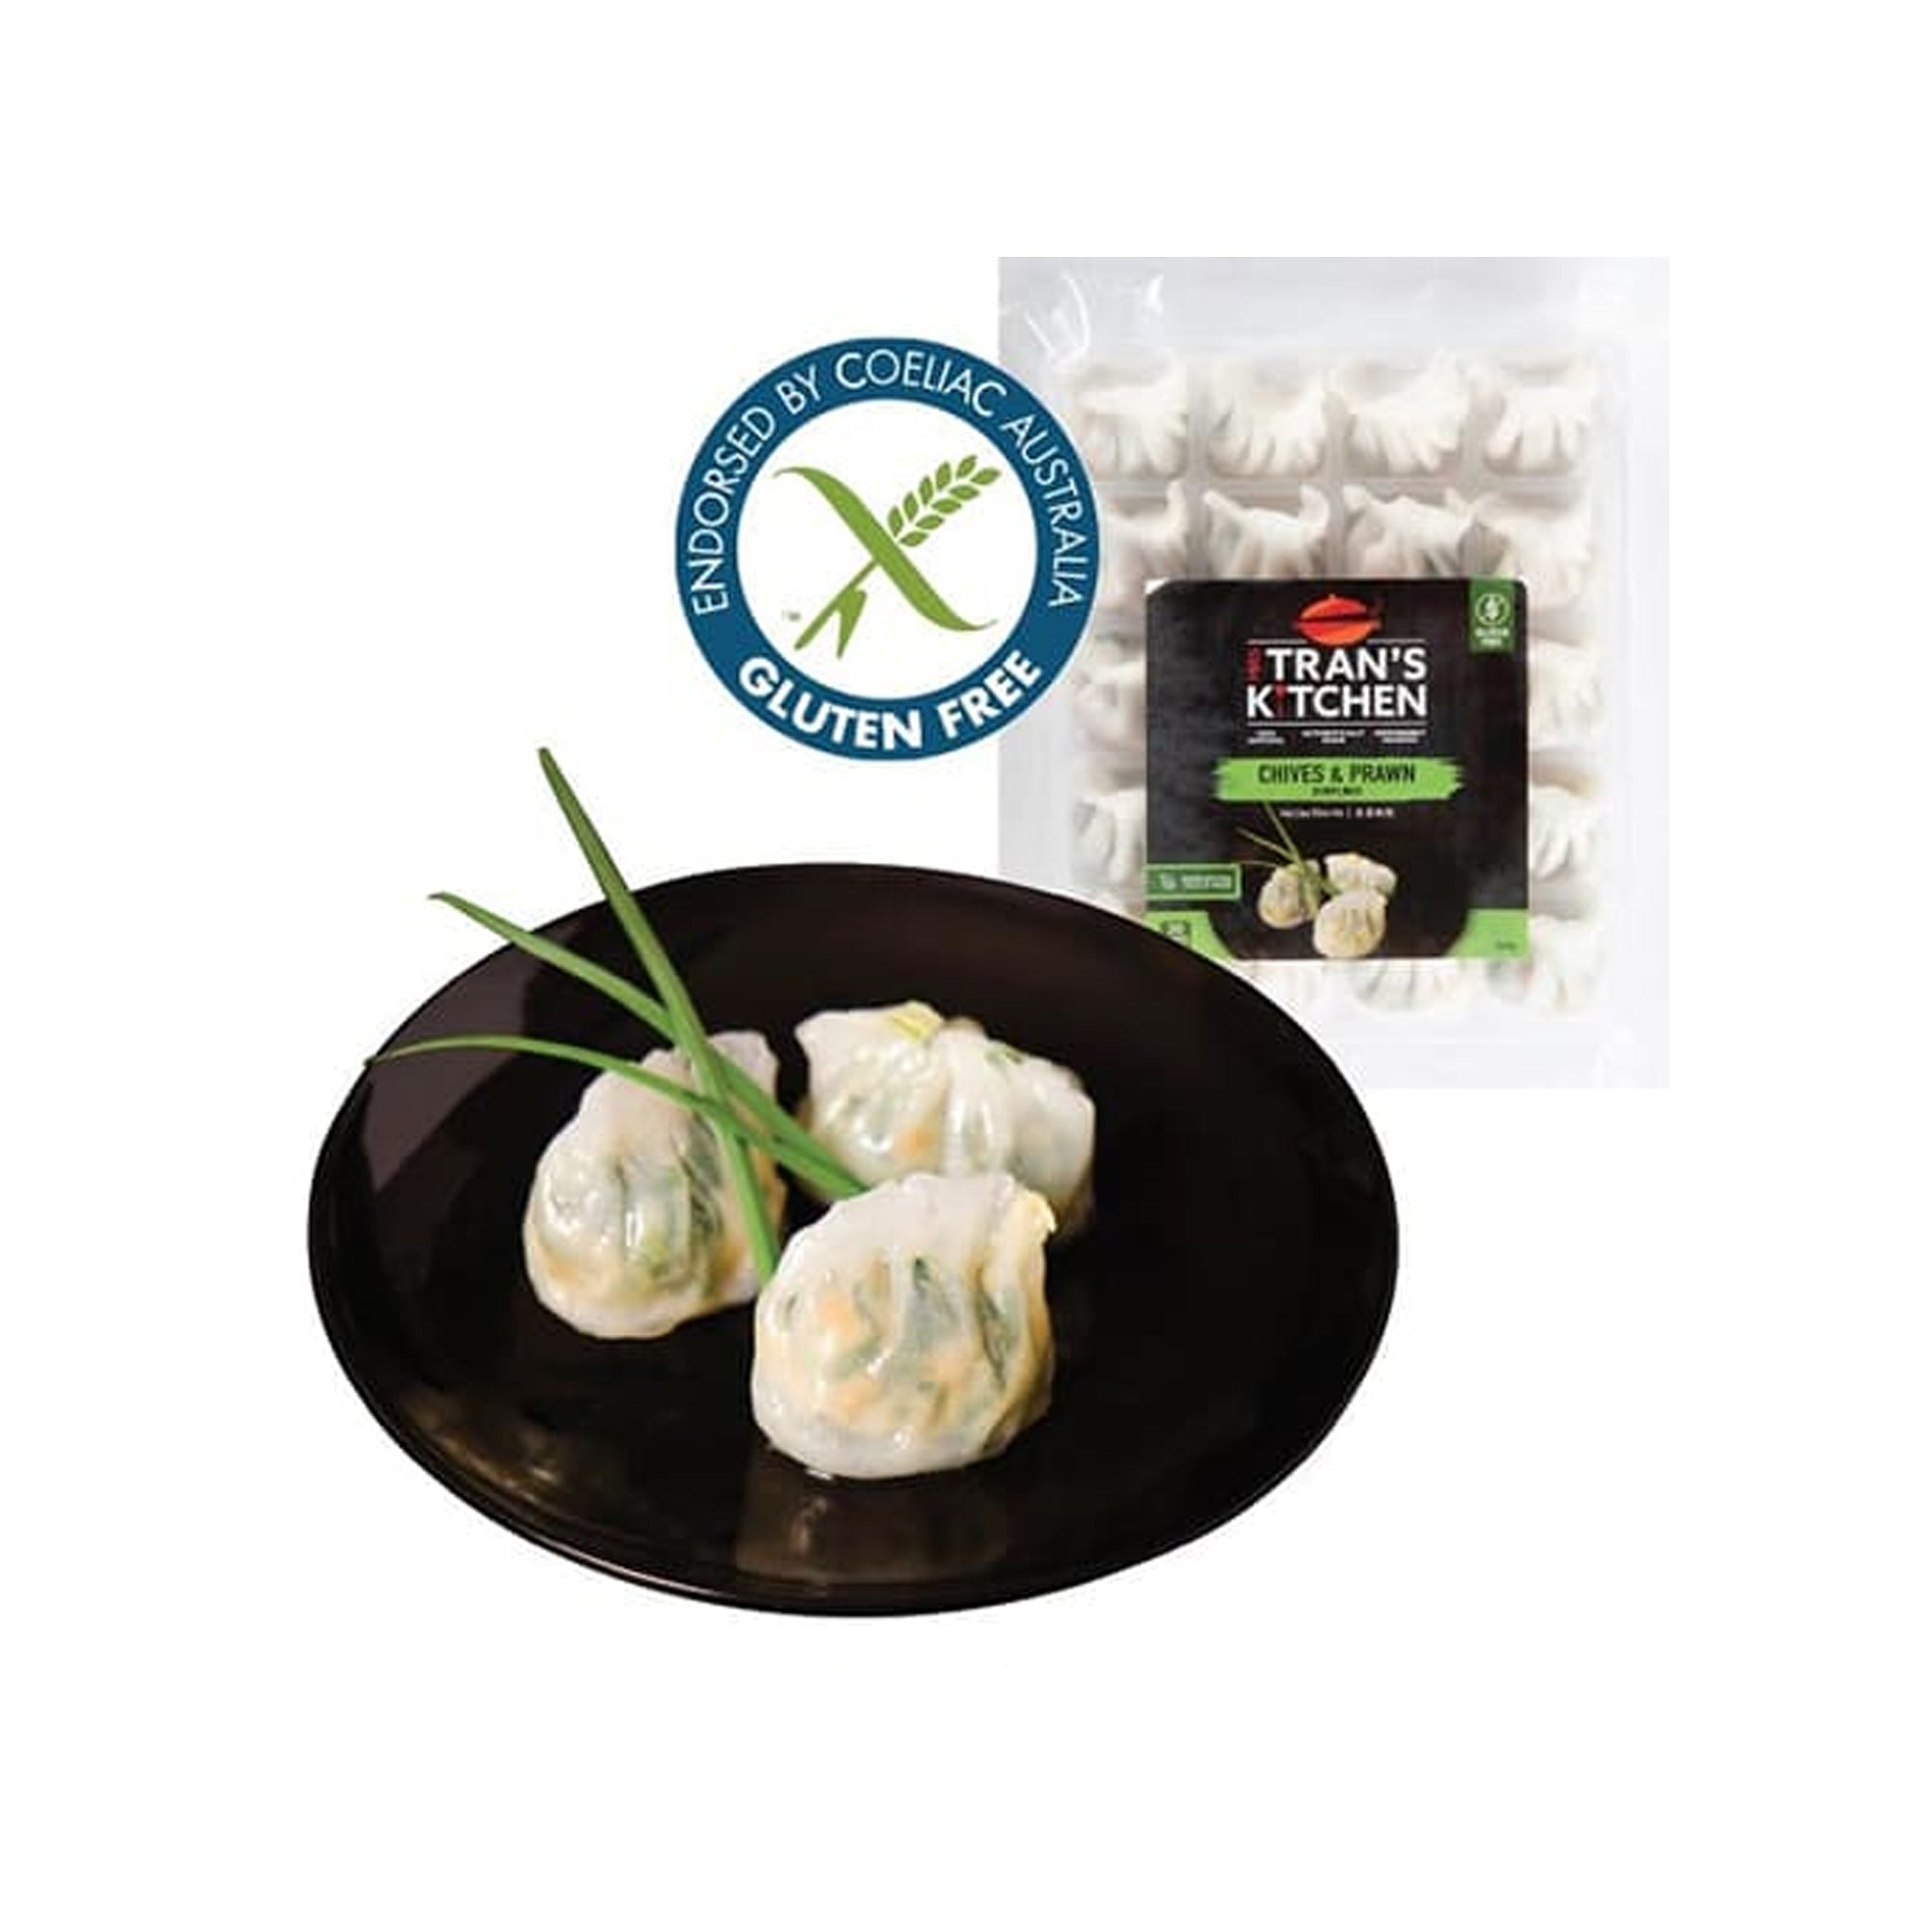 Mrs Trans Dumplings - Chive & Prawn (20) 500g